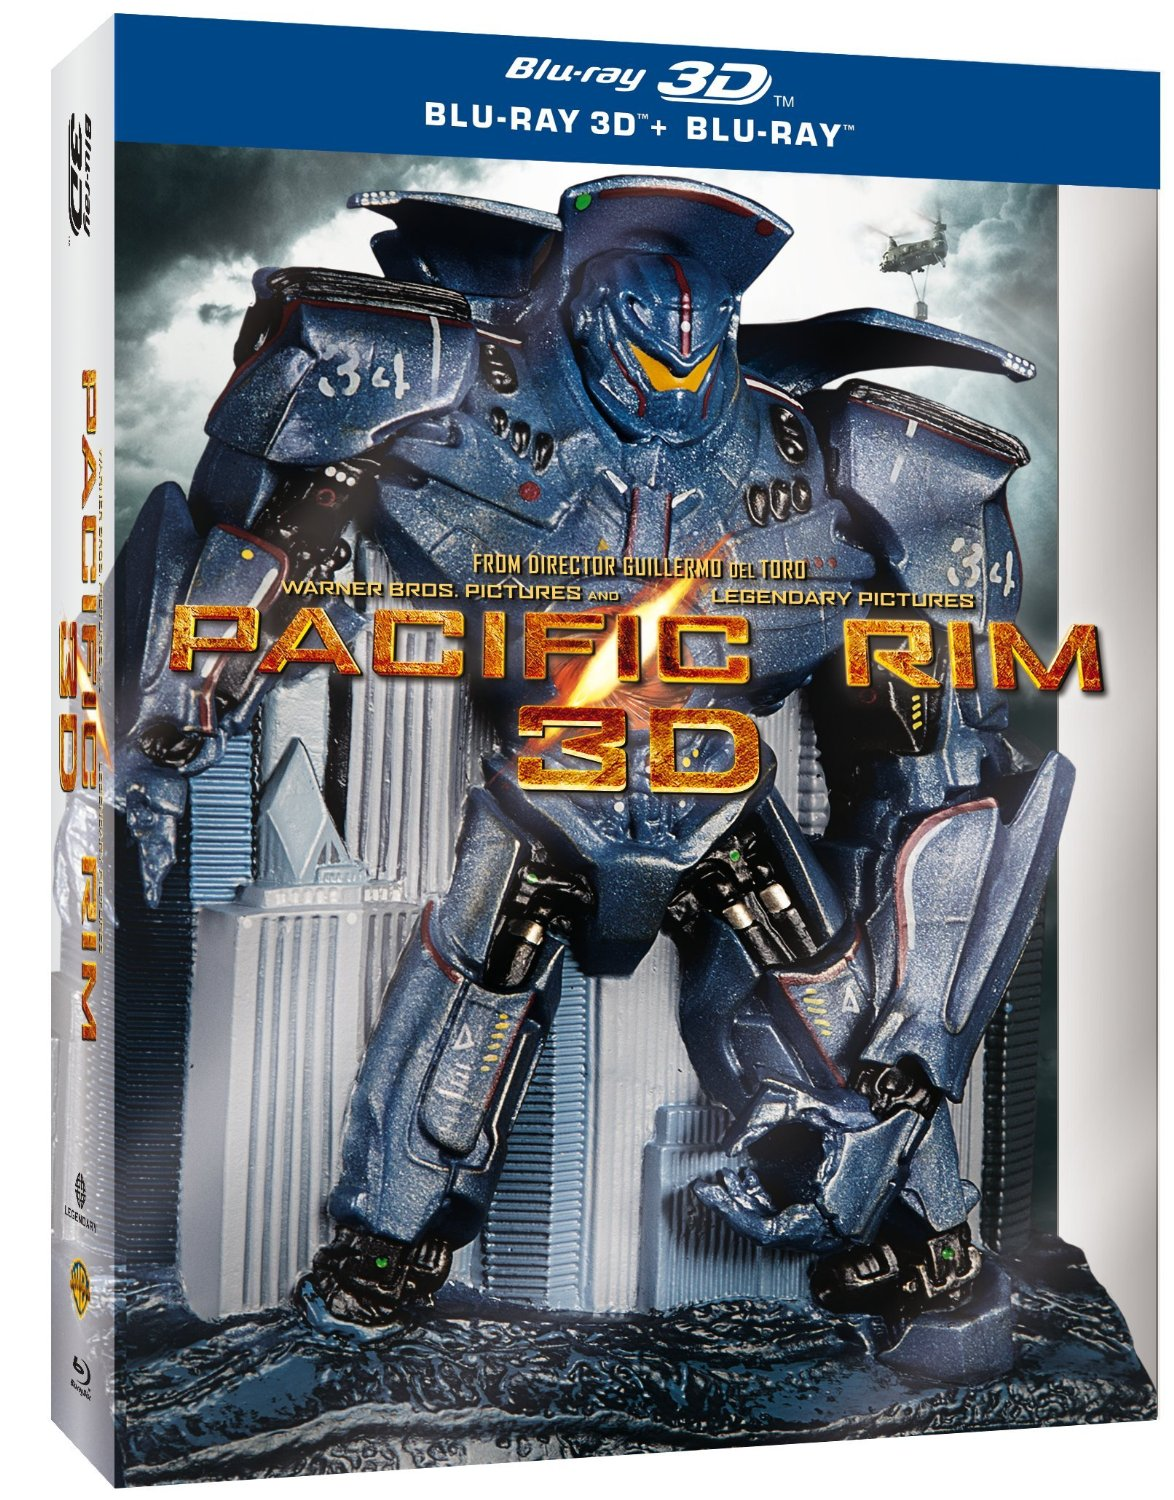 pacific rim limited edition blu-ray